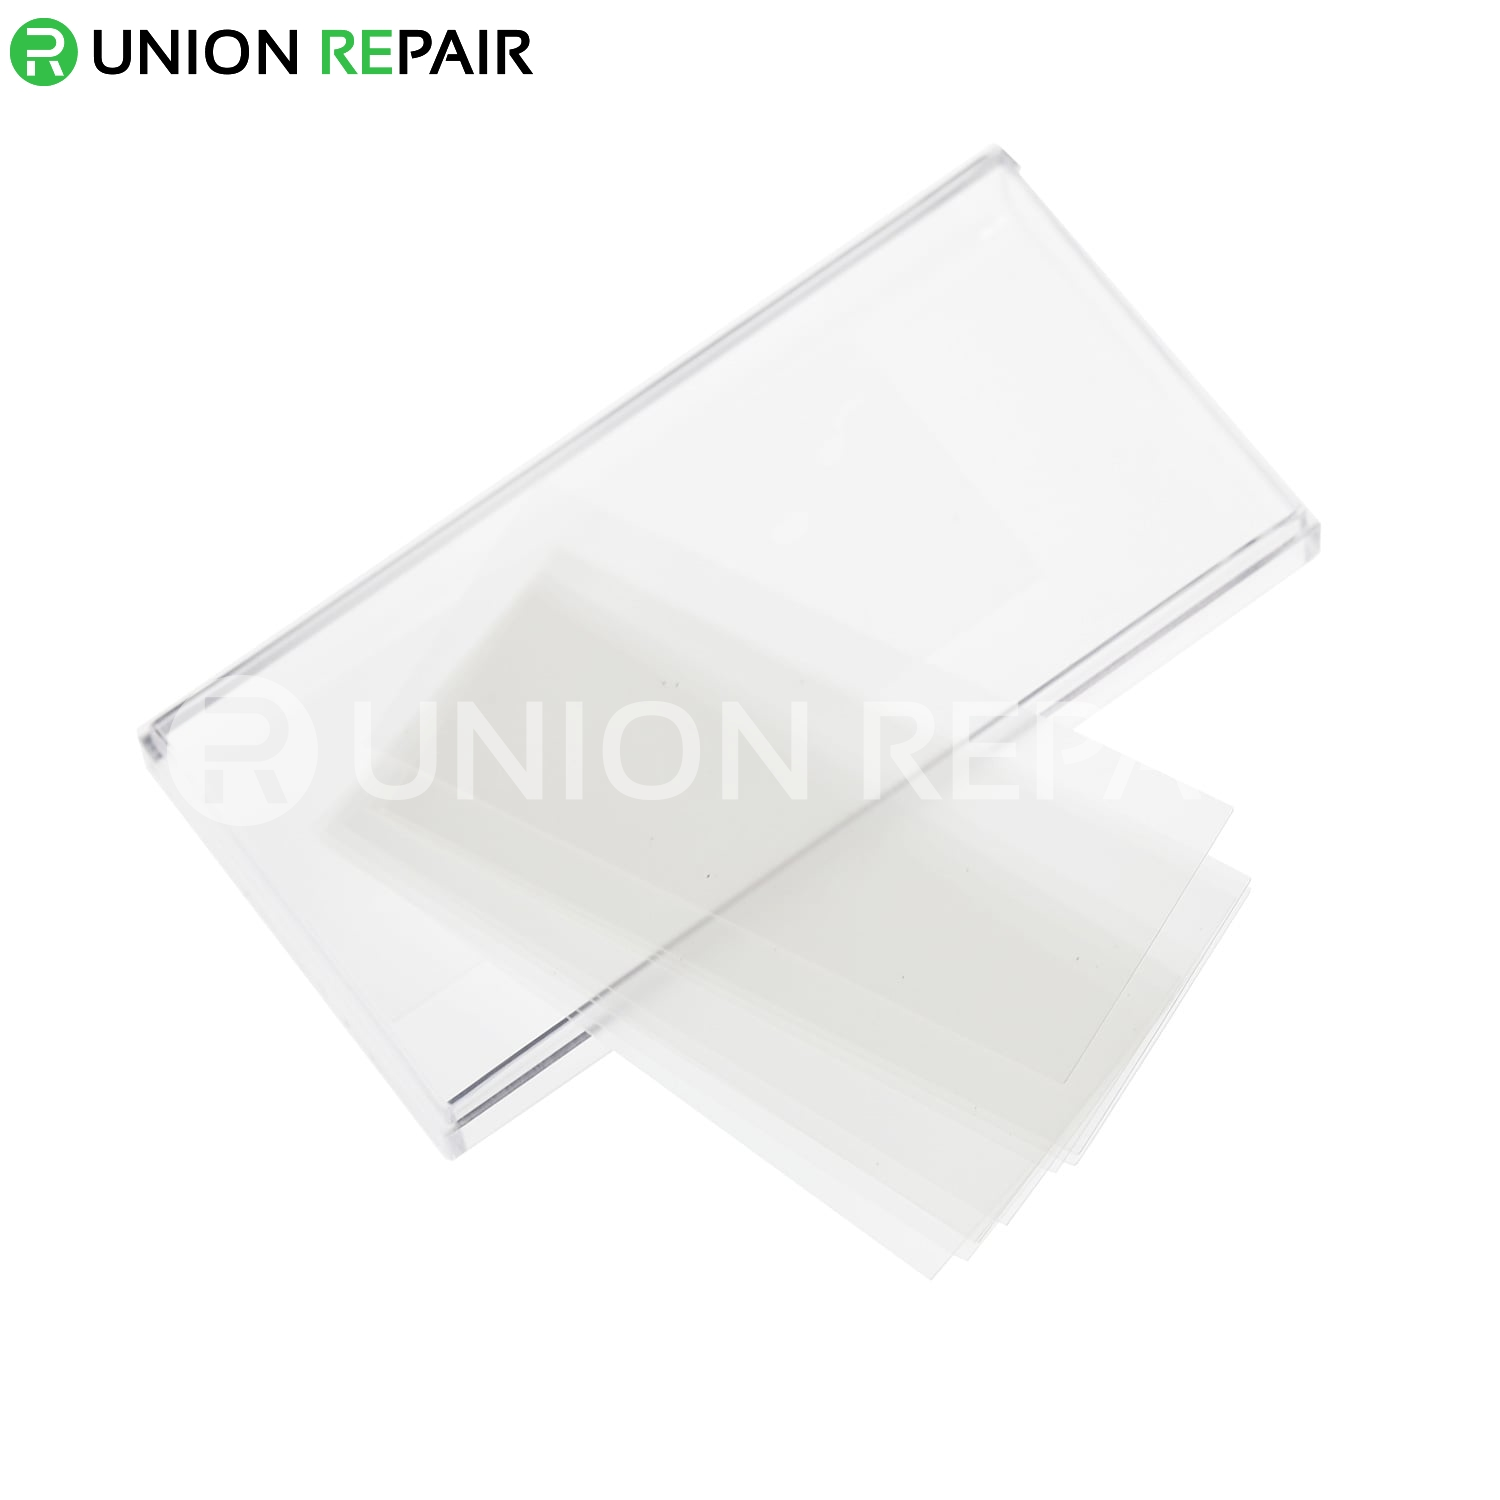 Air Slice Macbook Retina Screen 0.04mm Opener Set